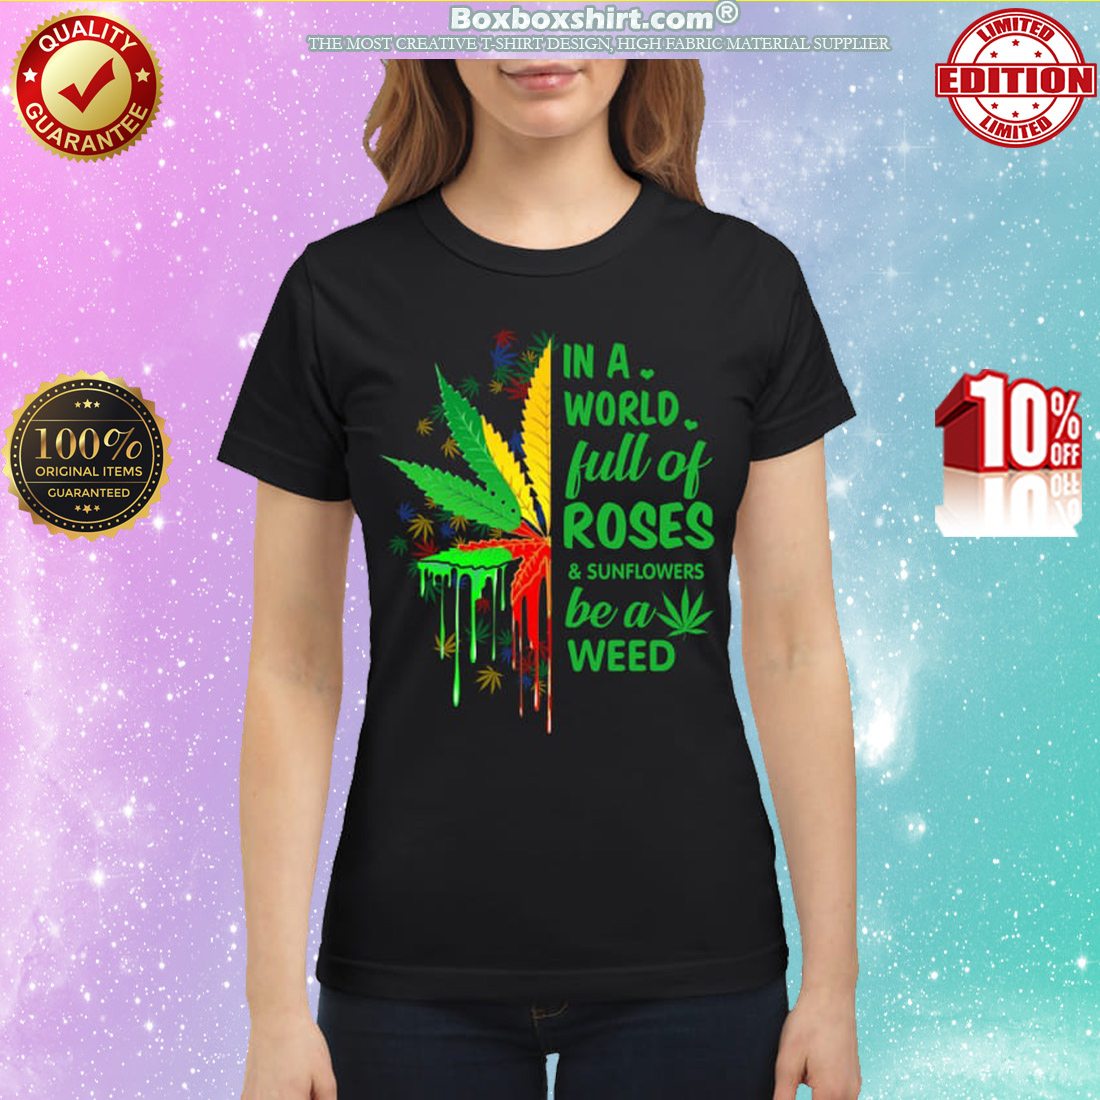 In a world full of roses and sunflowers be a weed classic shirt